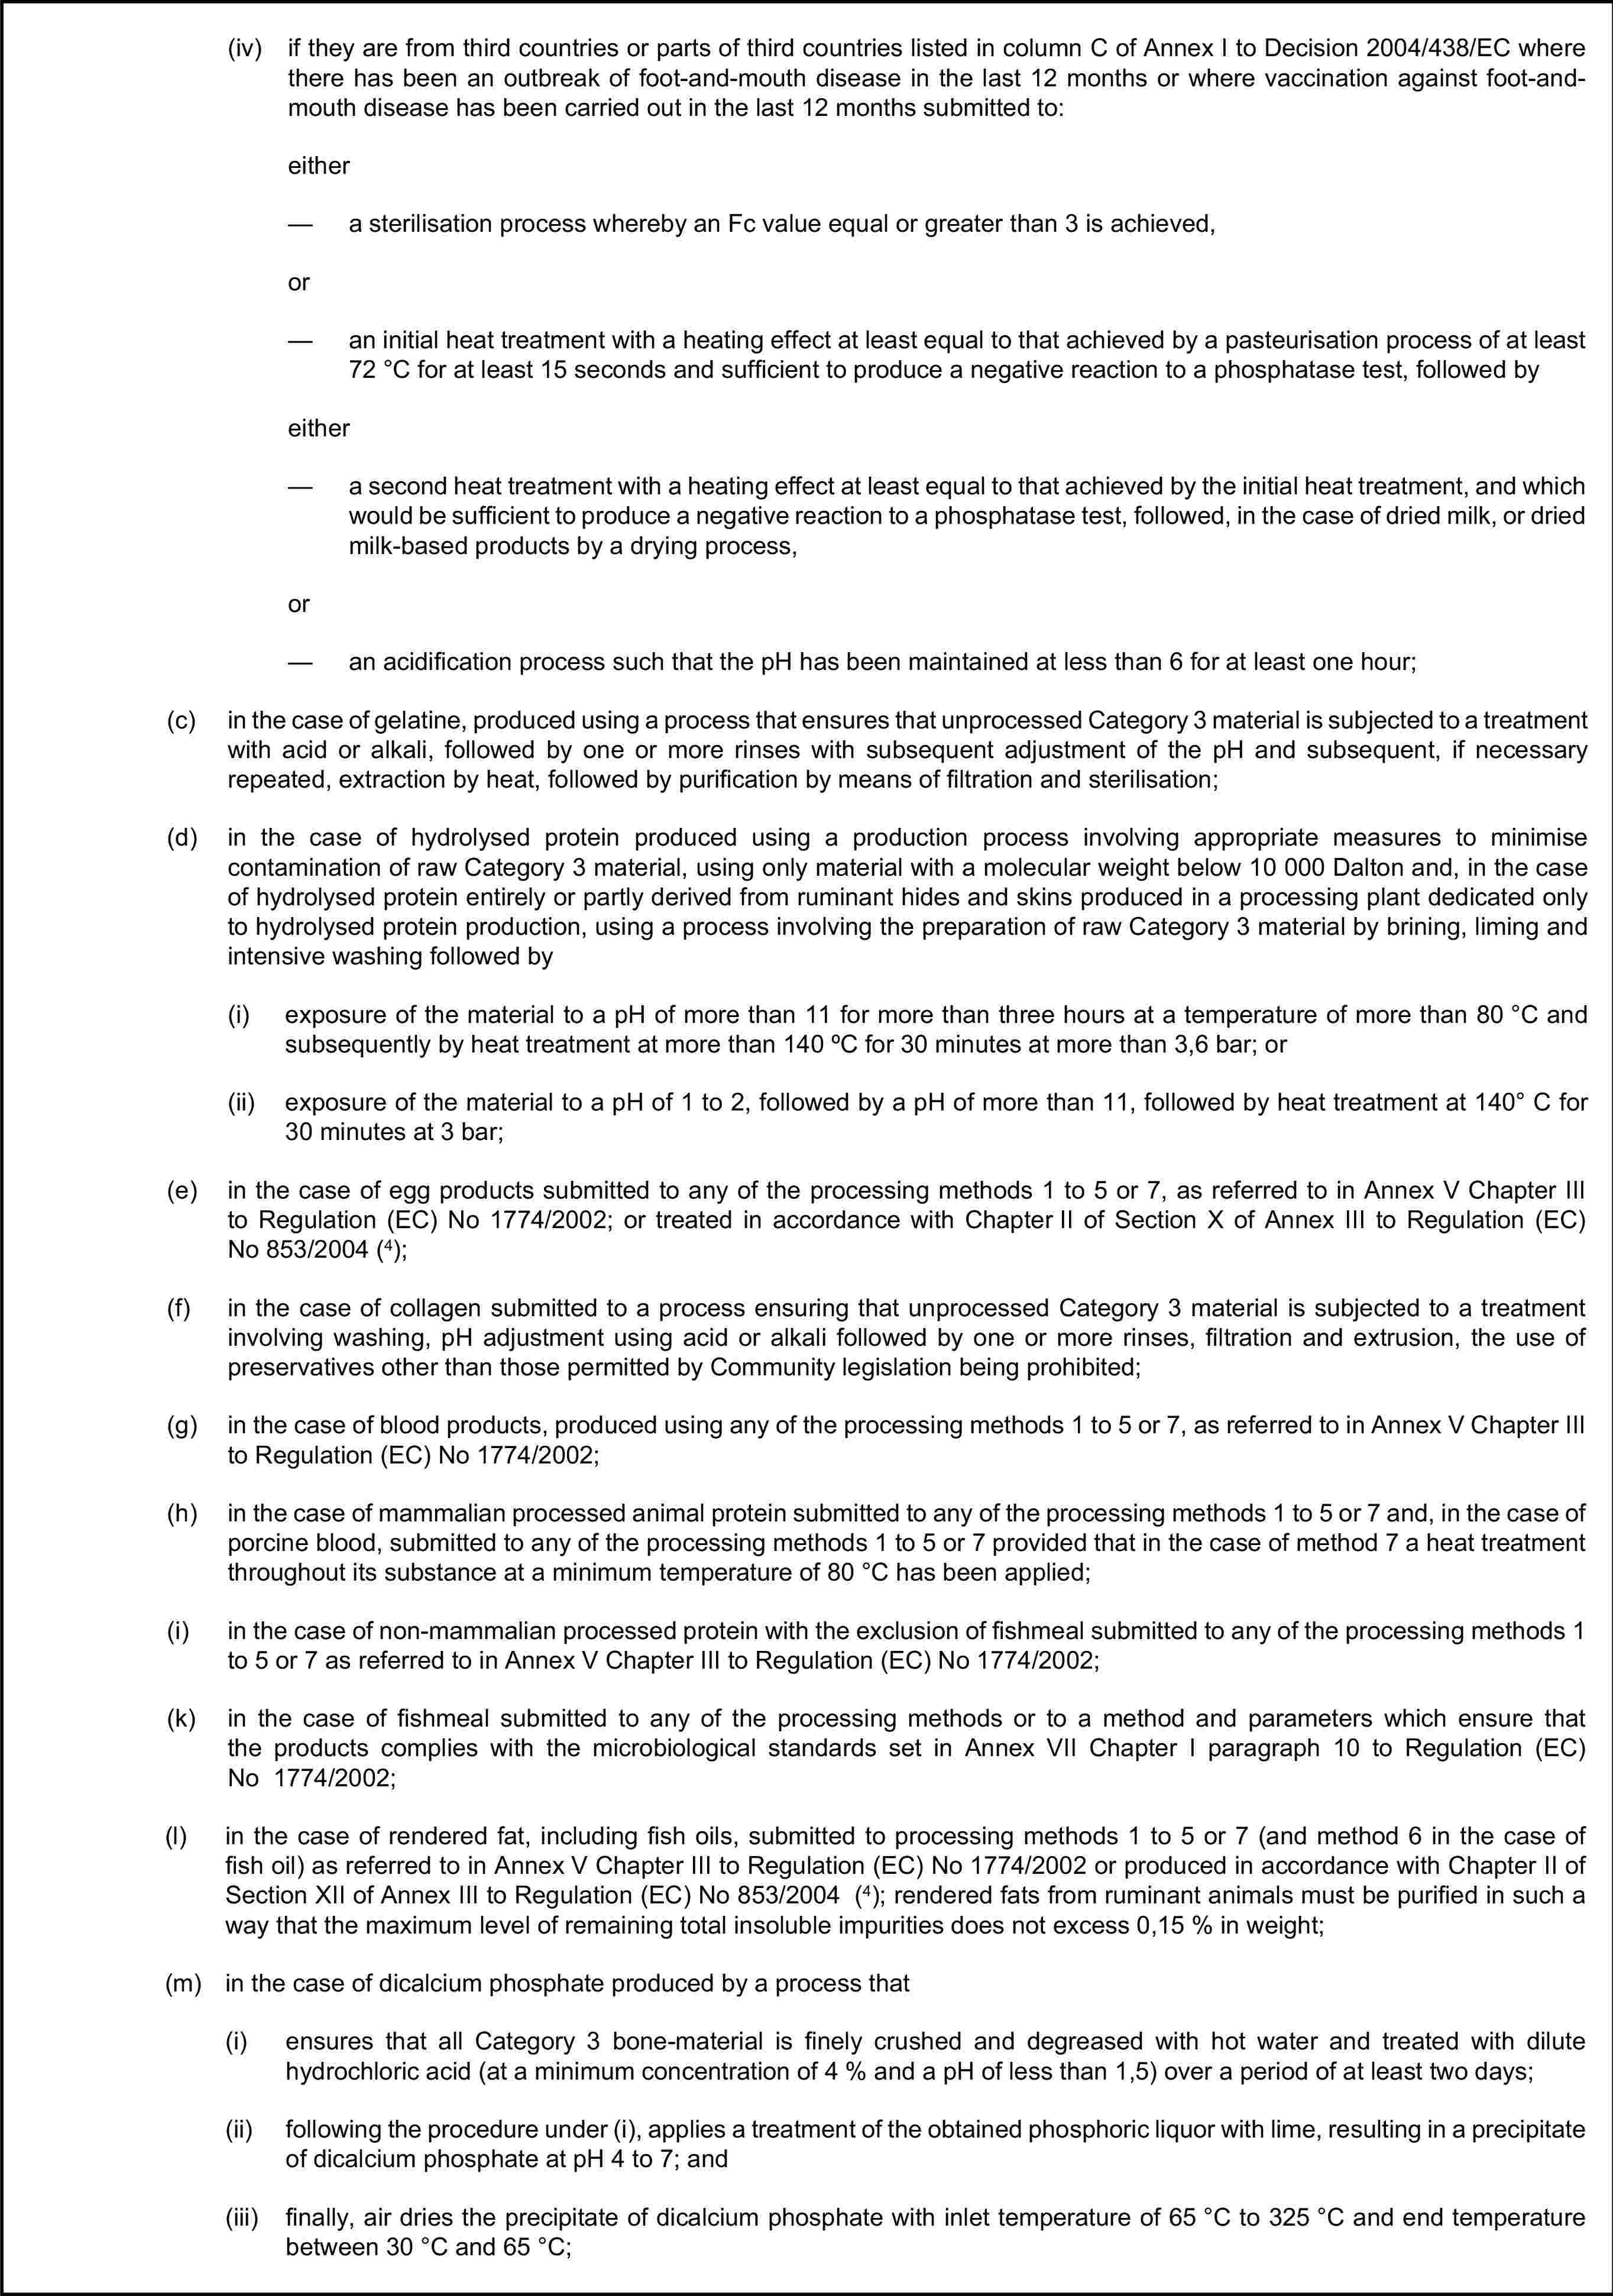 (iv) if they are from third countries or parts of third countries listed in column C of Annex I to Decision 2004/438/EC where there has been an outbreak of foot-and-mouth disease in the last 12 months or where vaccination against foot-and-mouth disease has been carried out in the last 12 months submitted to:either— a sterilisation process whereby an Fc value equal or greater than 3 is achieved,or— an initial heat treatment with a heating effect at least equal to that achieved by a pasteurisation process of at least 72°C for at least 15 seconds and sufficient to produce a negative reaction to a phosphatase test, followed byeither— a second heat treatment with a heating effect at least equal to that achieved by the initial heat treatment, and which would be sufficient to produce a negative reaction to a phosphatase test, followed, in the case of dried milk, or dried milk-based products by a drying process,or— an acidification process such that the pH has been maintained at less than 6 for at least one hour;(c) in the case of gelatine, produced using a process that ensures that unprocessed Category 3 material is subjected to a treatment with acid or alkali, followed by one or more rinses with subsequent adjustment of the pH and subsequent, if necessary repeated, extraction by heat, followed by purification by means of filtration and sterilisation;(d) in the case of hydrolysed protein produced using a production process involving appropriate measures to minimise contamination of raw Category 3 material, using only material with a molecular weight below 10 000 Dalton and, in the case of hydrolysed protein entirely or partly derived from ruminant hides and skins produced in a processing plant dedicated only to hydrolysed protein production, using a process involving the preparation of raw Category 3 material by brining, liming and intensive washing followed by(i) exposure of the material to a pH of more than 11 for more than three hours at a temperature of more than 80°C 